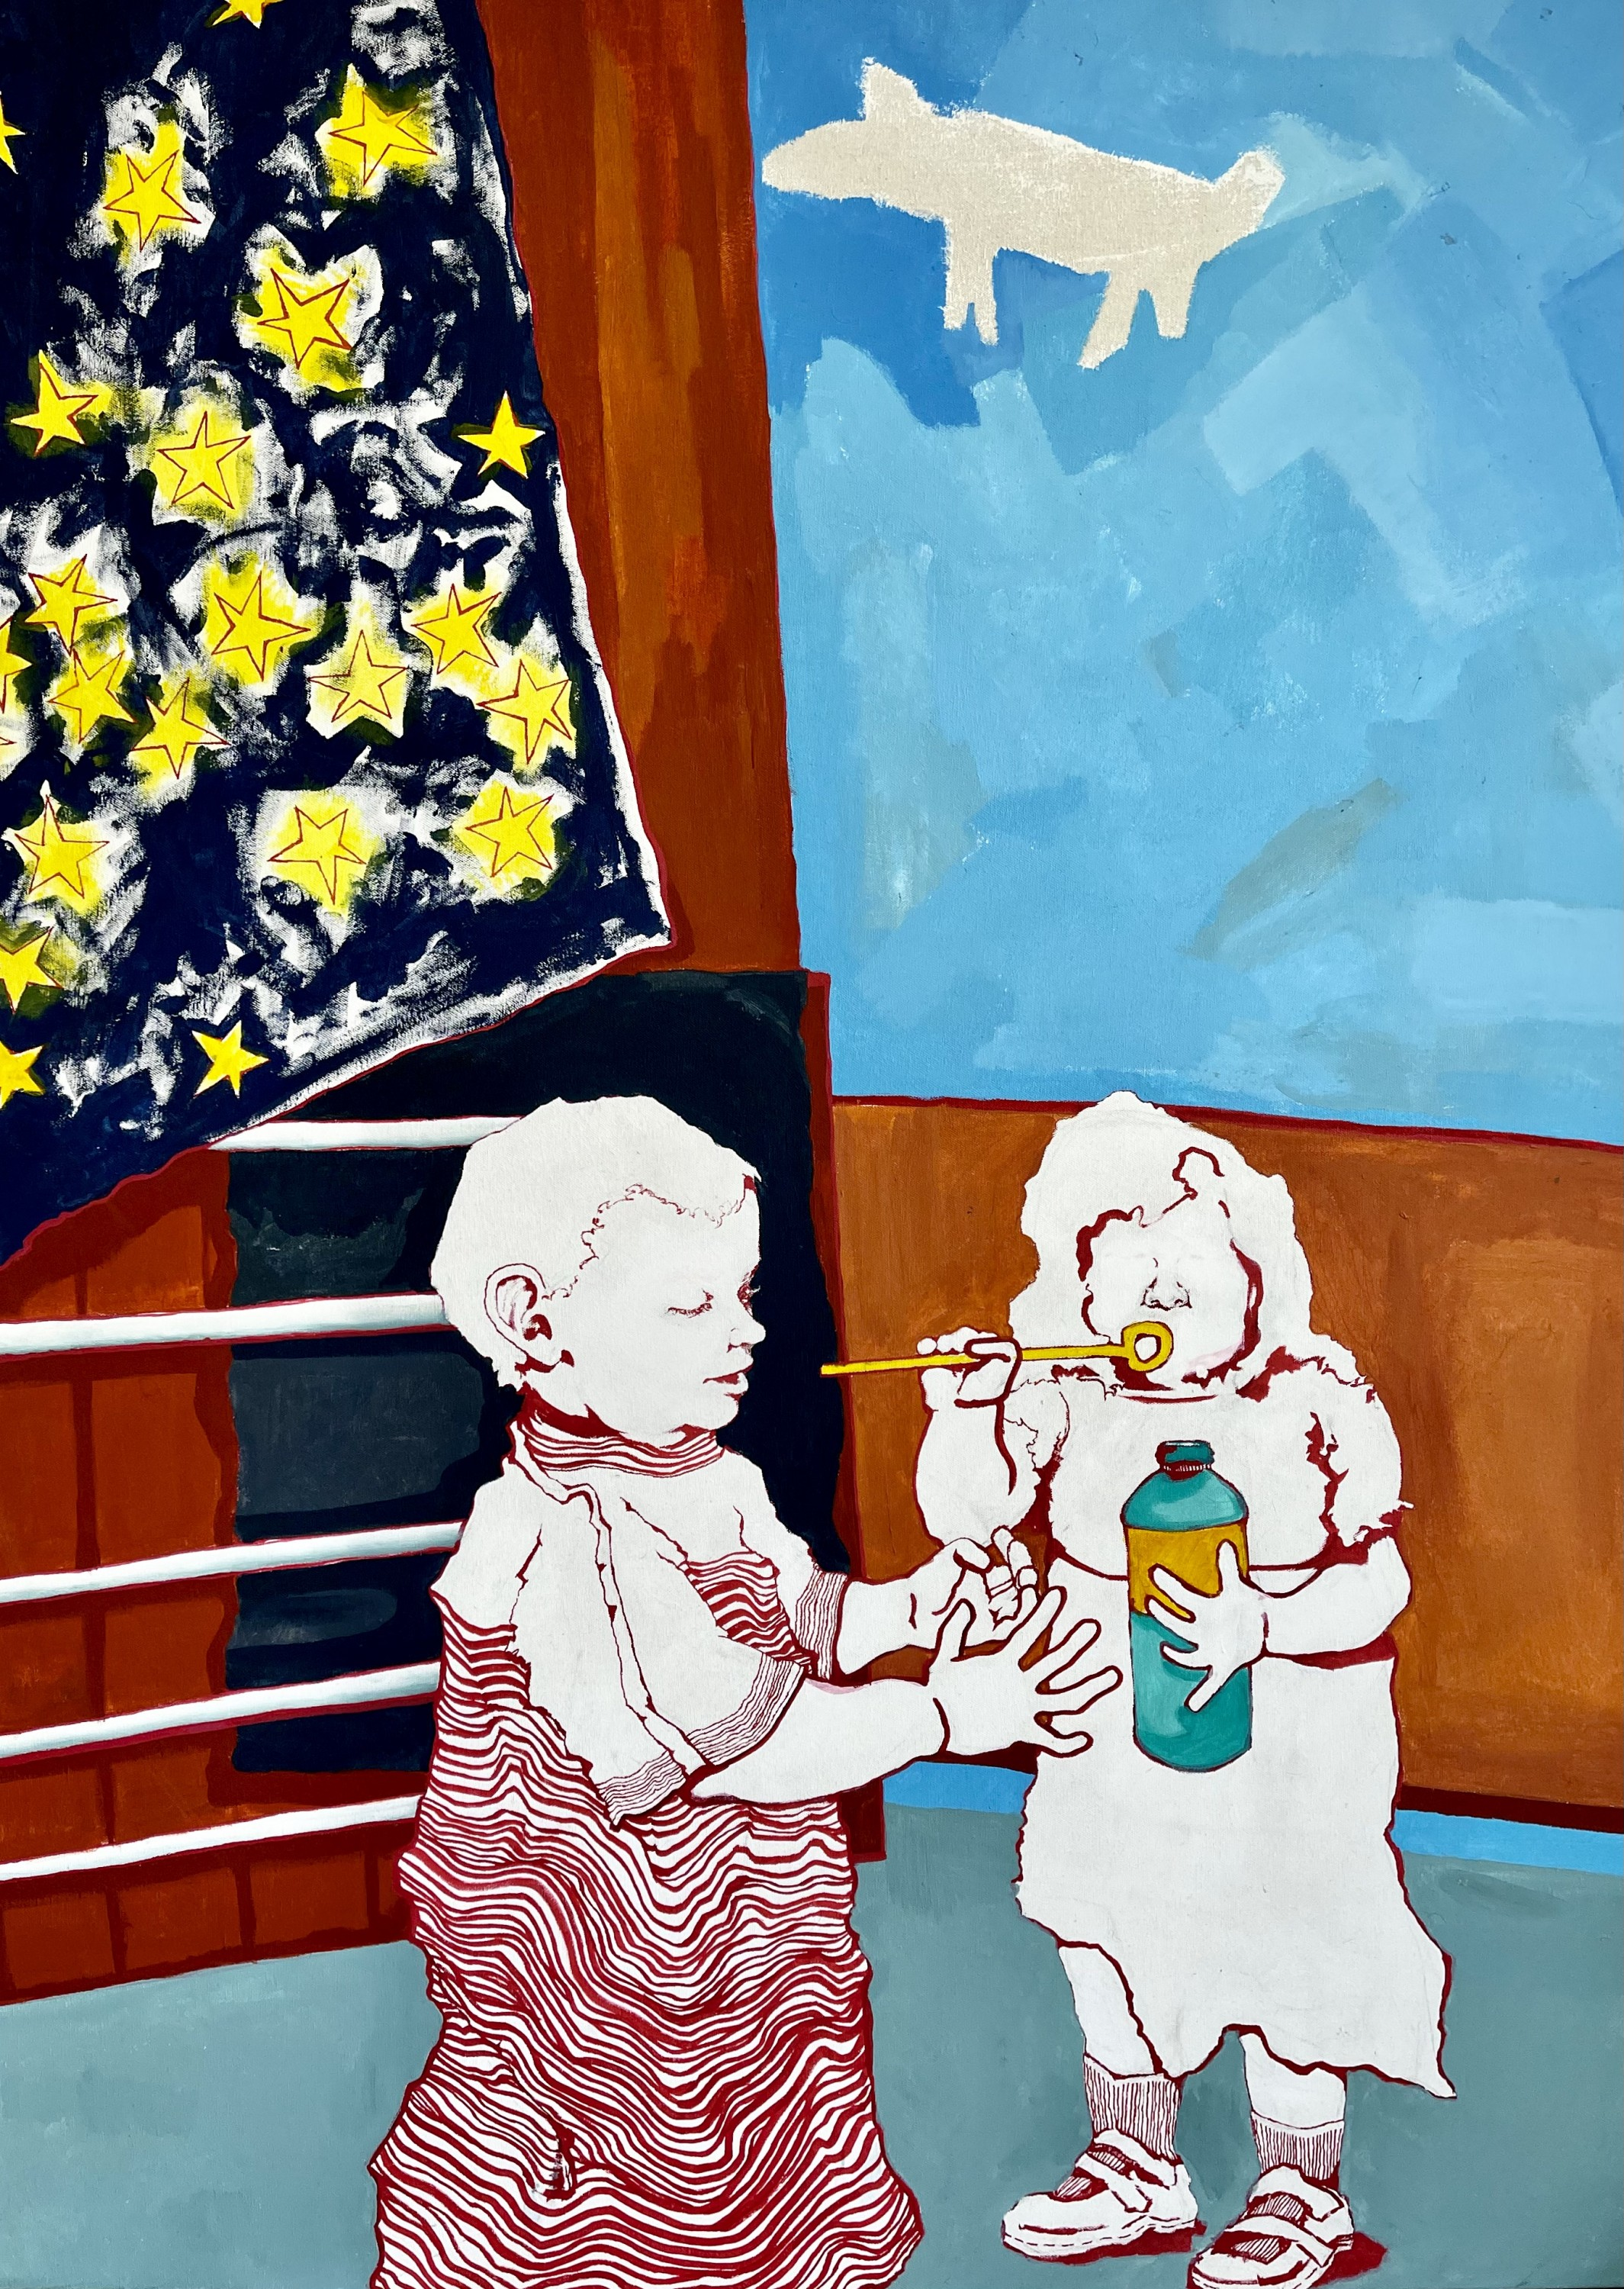 Two toddlers drawn with bright red oil pen stand blowing bubbles on a flat abstracted patio. The boy in the foreground stands under a starred flag while wearing a striped shirt. His hands are explorative in the air, though the girl with the bubble's is no